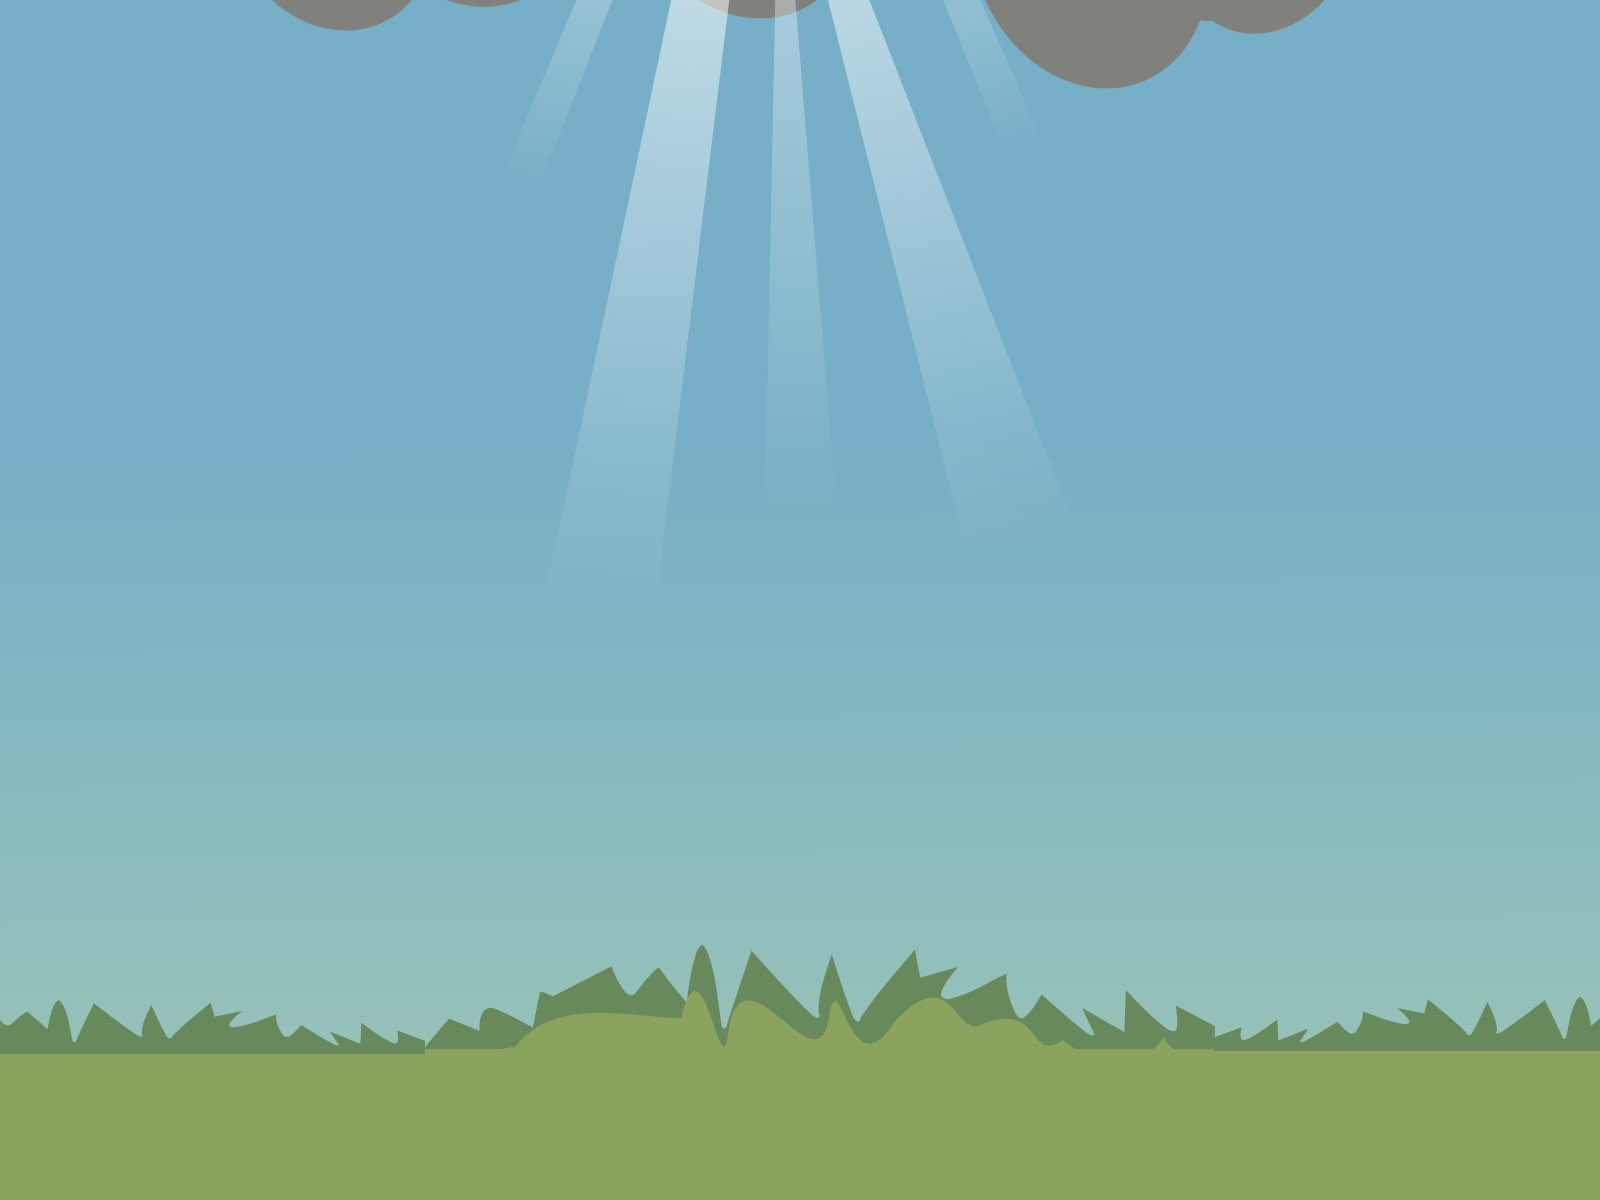 grass and sky backgrounds for powerpoint templates ppt backgrounds